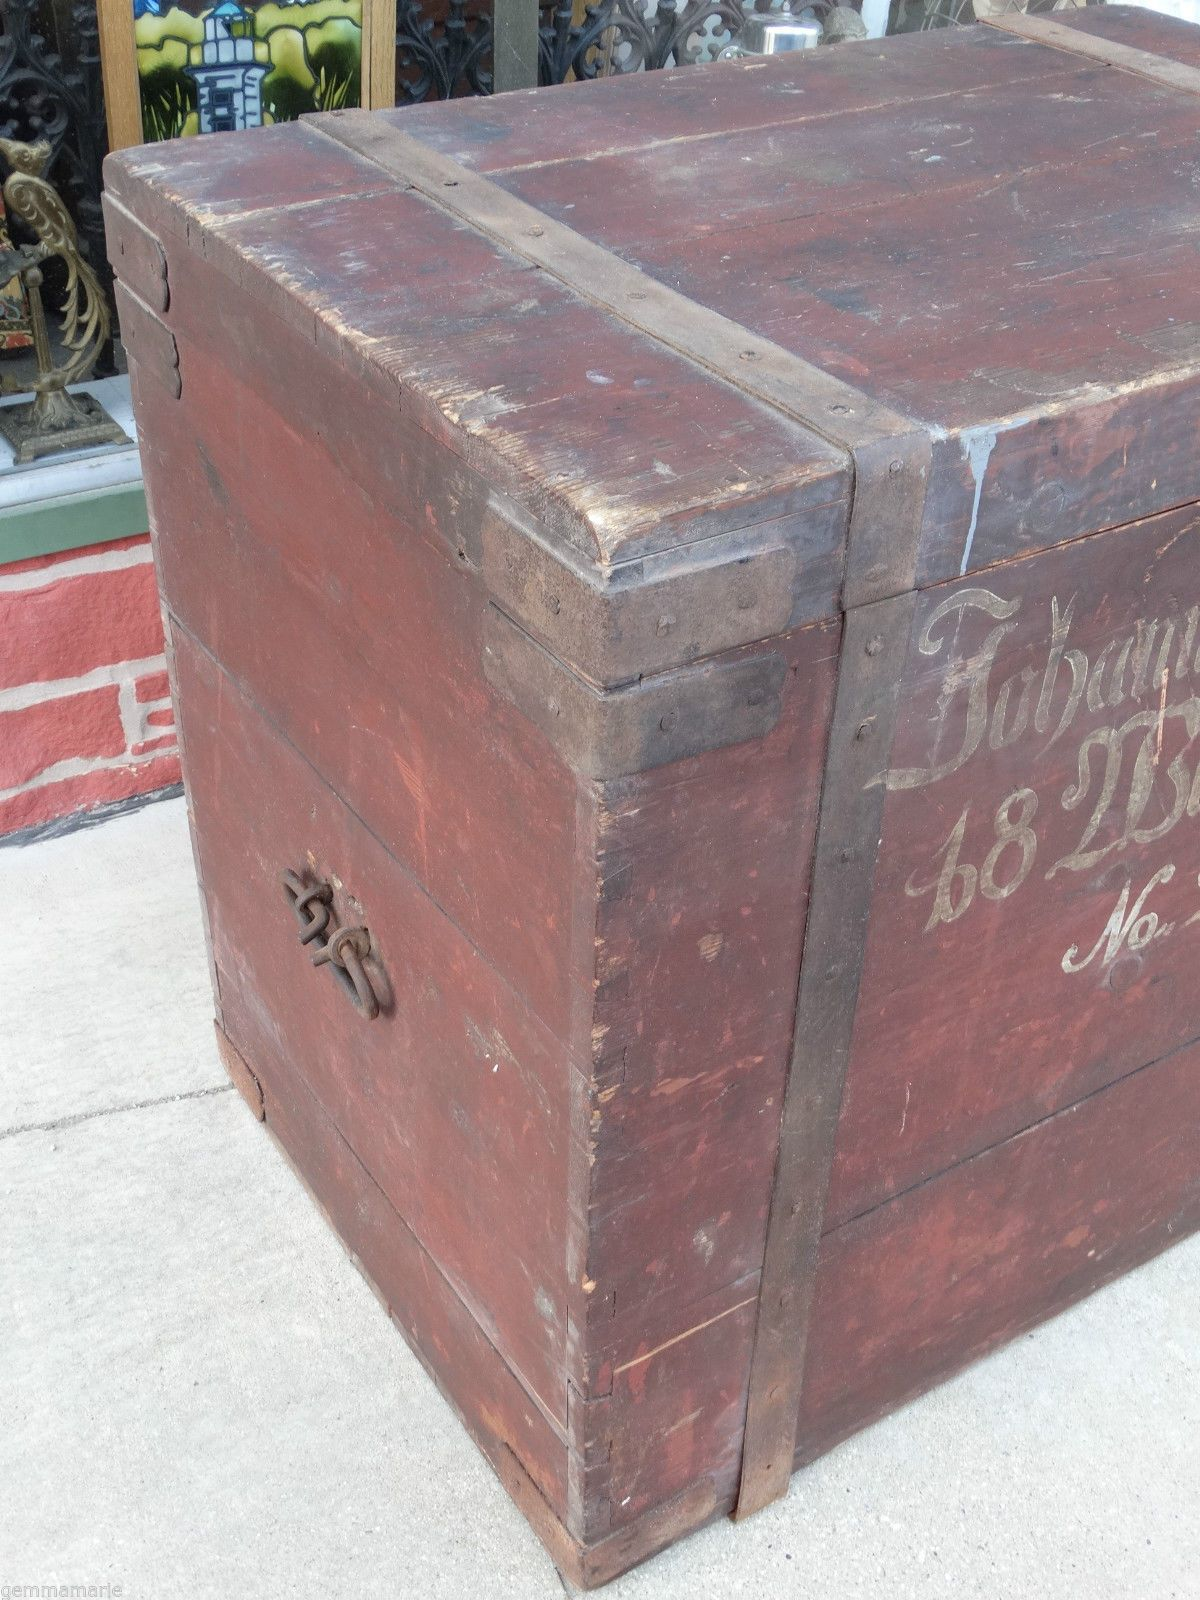 Antique Country Wood Planked Iron Chest Trunk 1855 Milwaukee Wi Pre Civil  War | eBay - Antique Country Wood Planked Iron Chest Trunk 1855 Milwaukee WI Pre